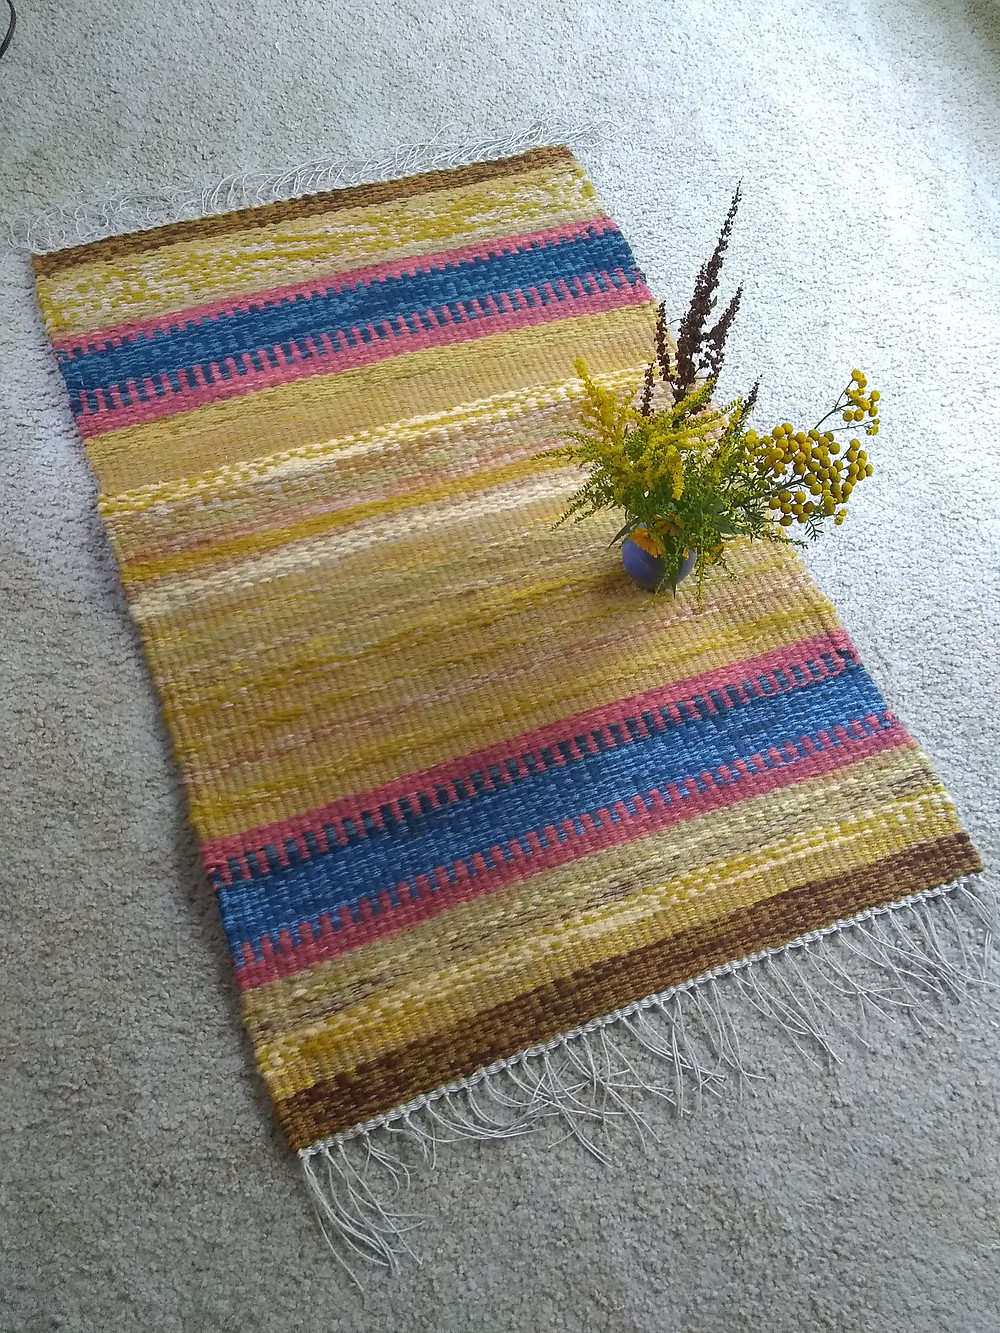 Gold, red, blue and brown striped handwoven rug with fringe.